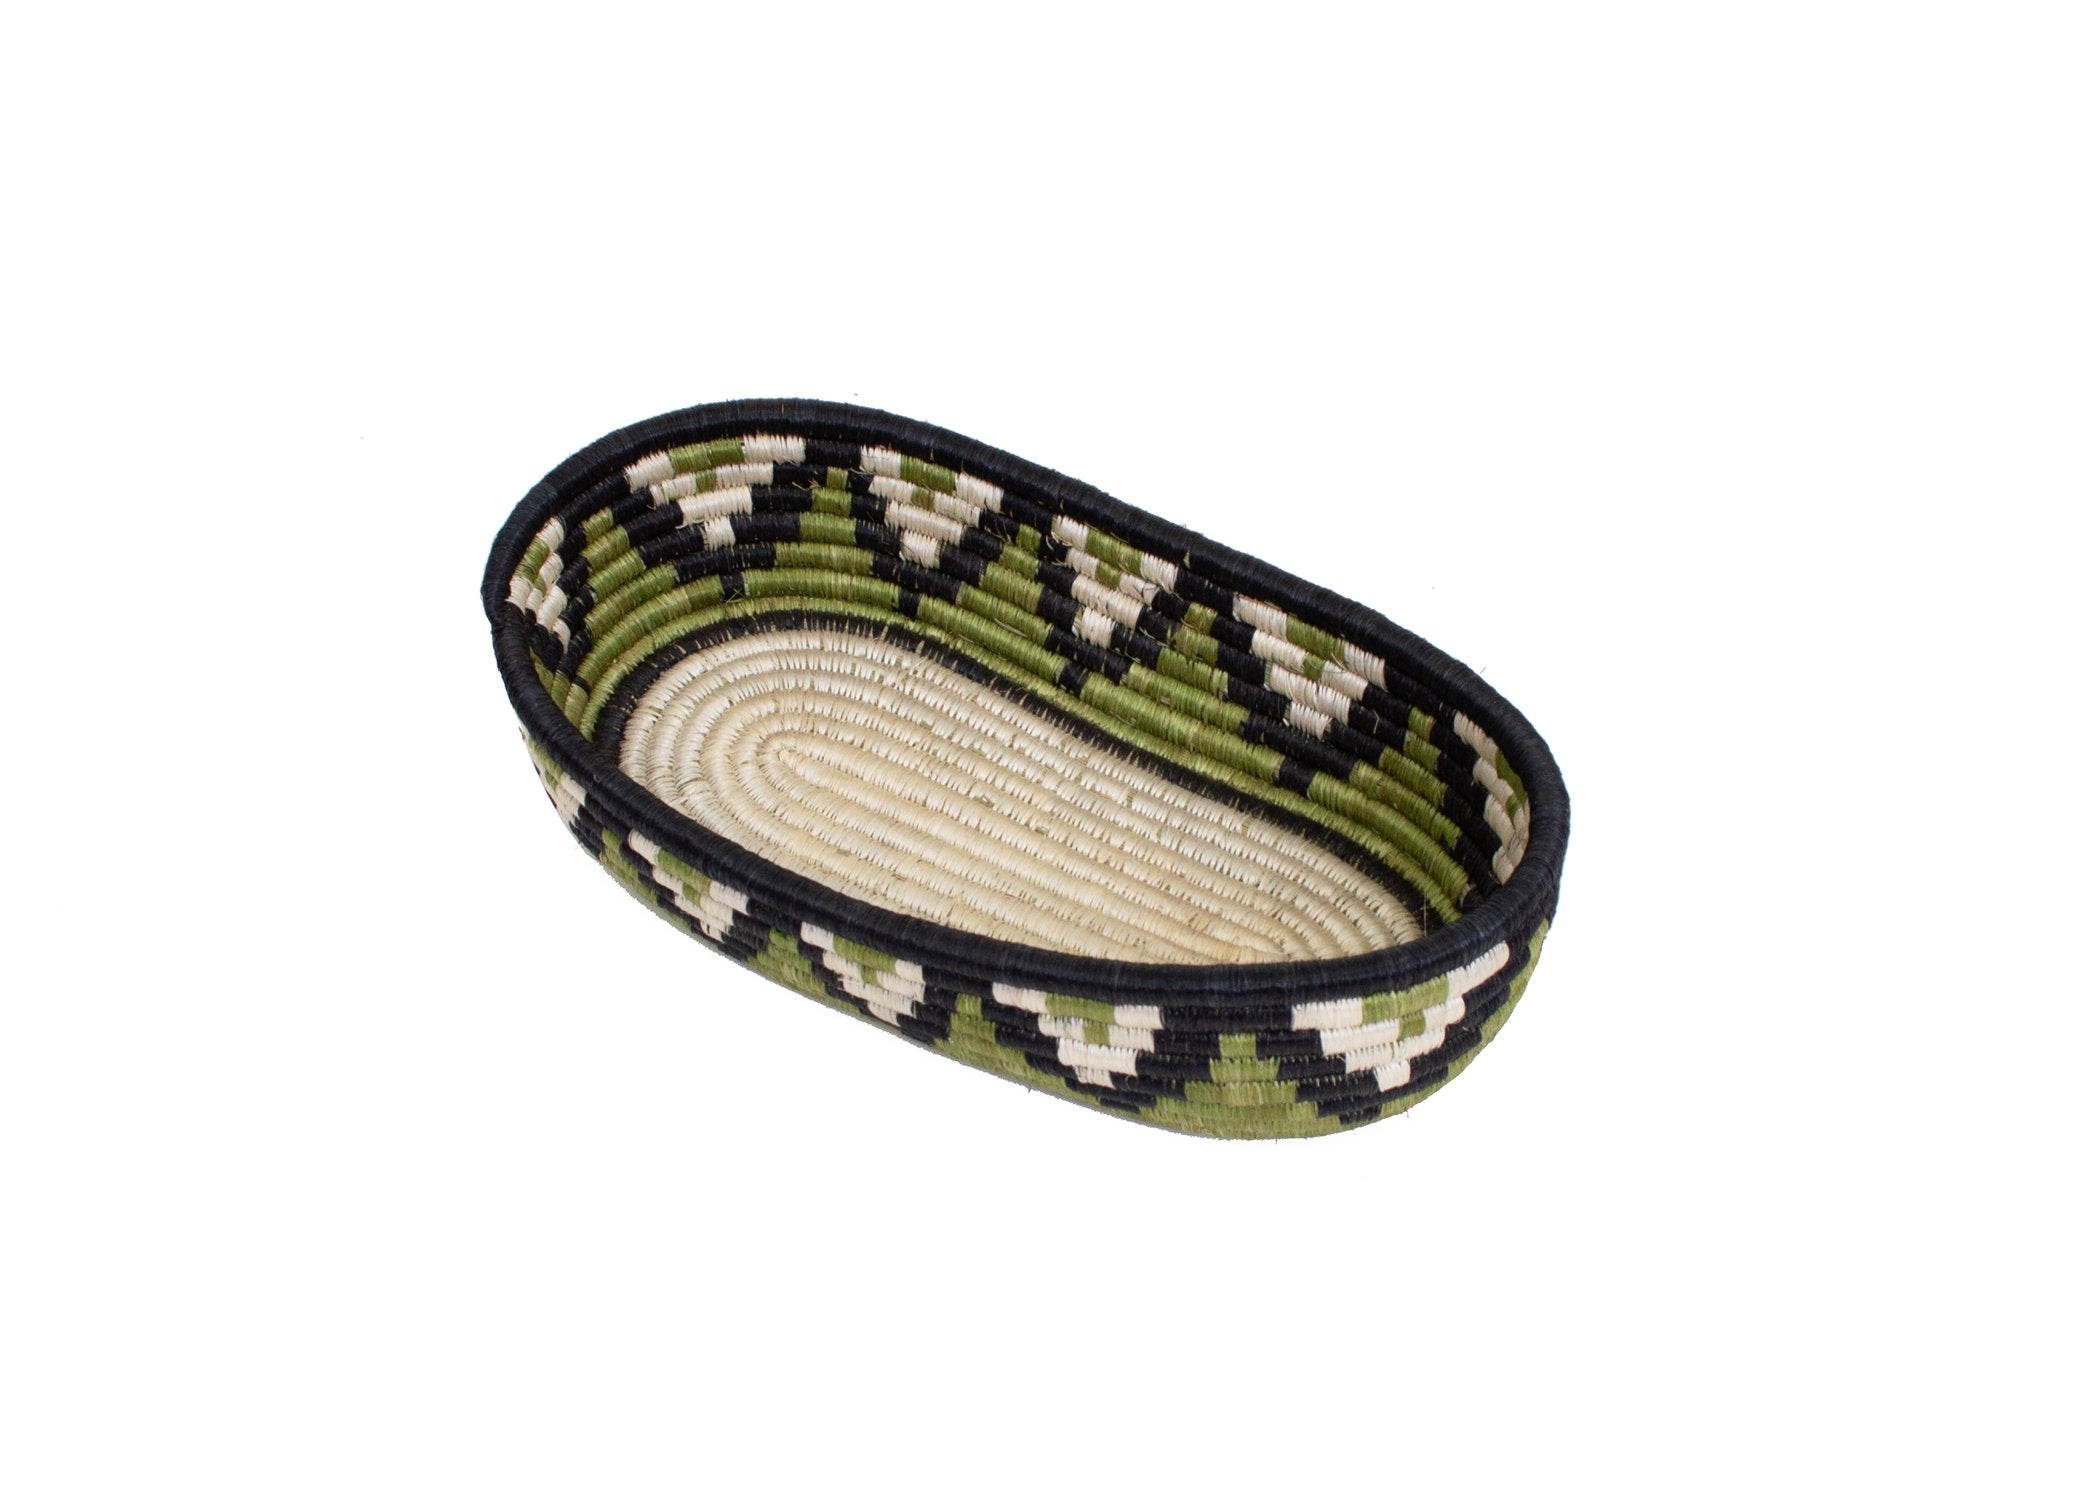 Pastel Green Oval Basket